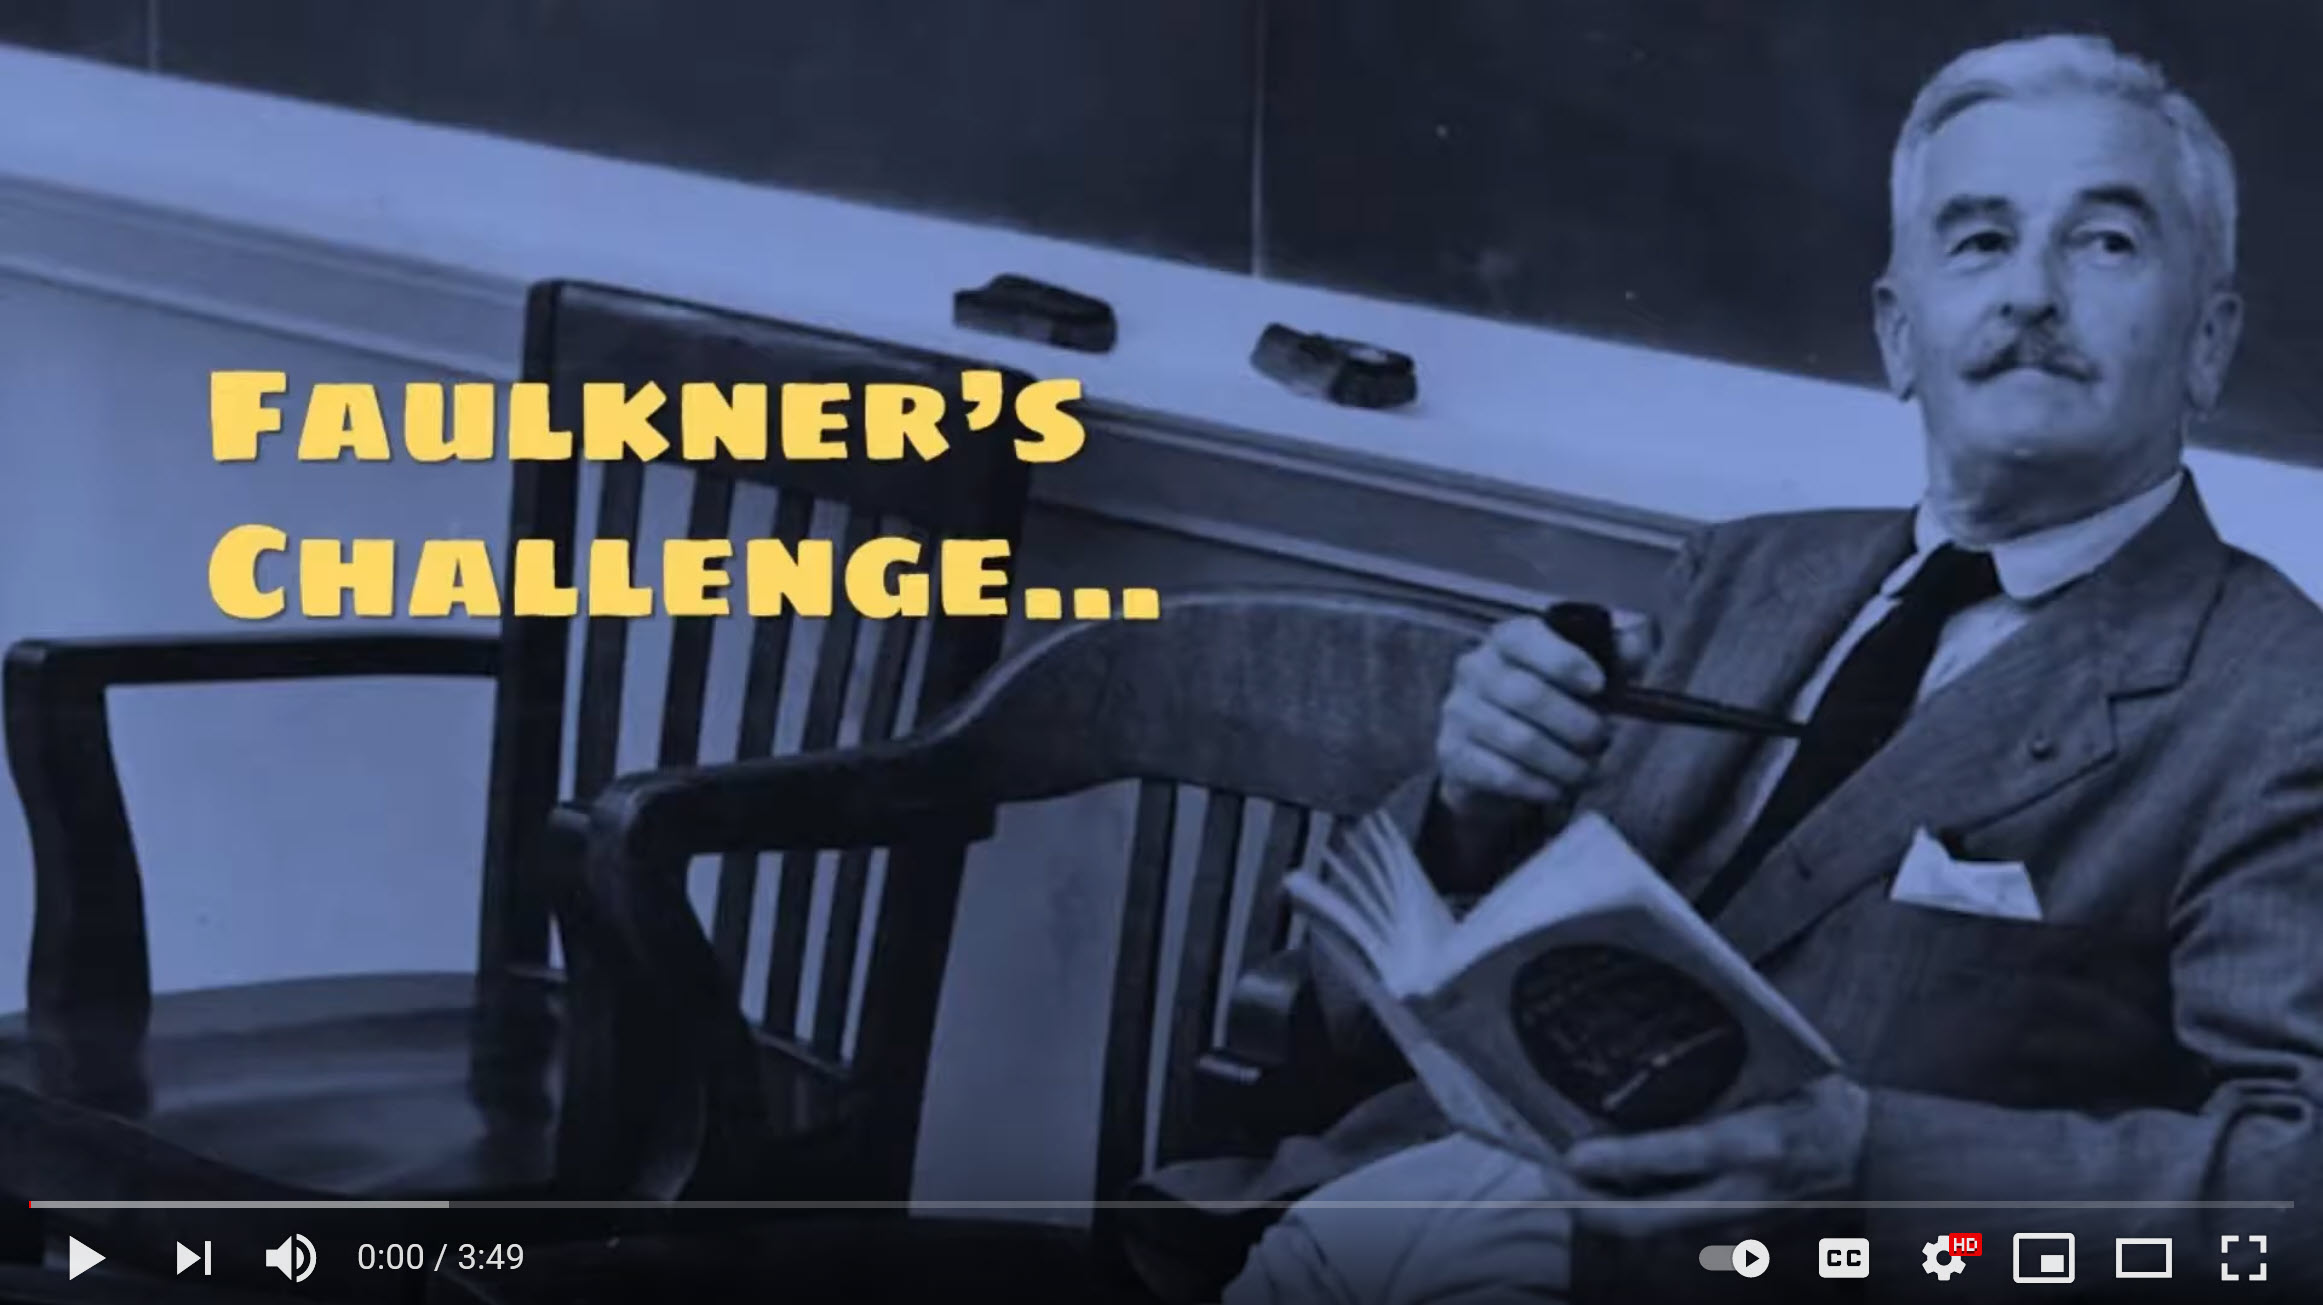 [Video] Faulkner's Challenge – Does your work match his goals?